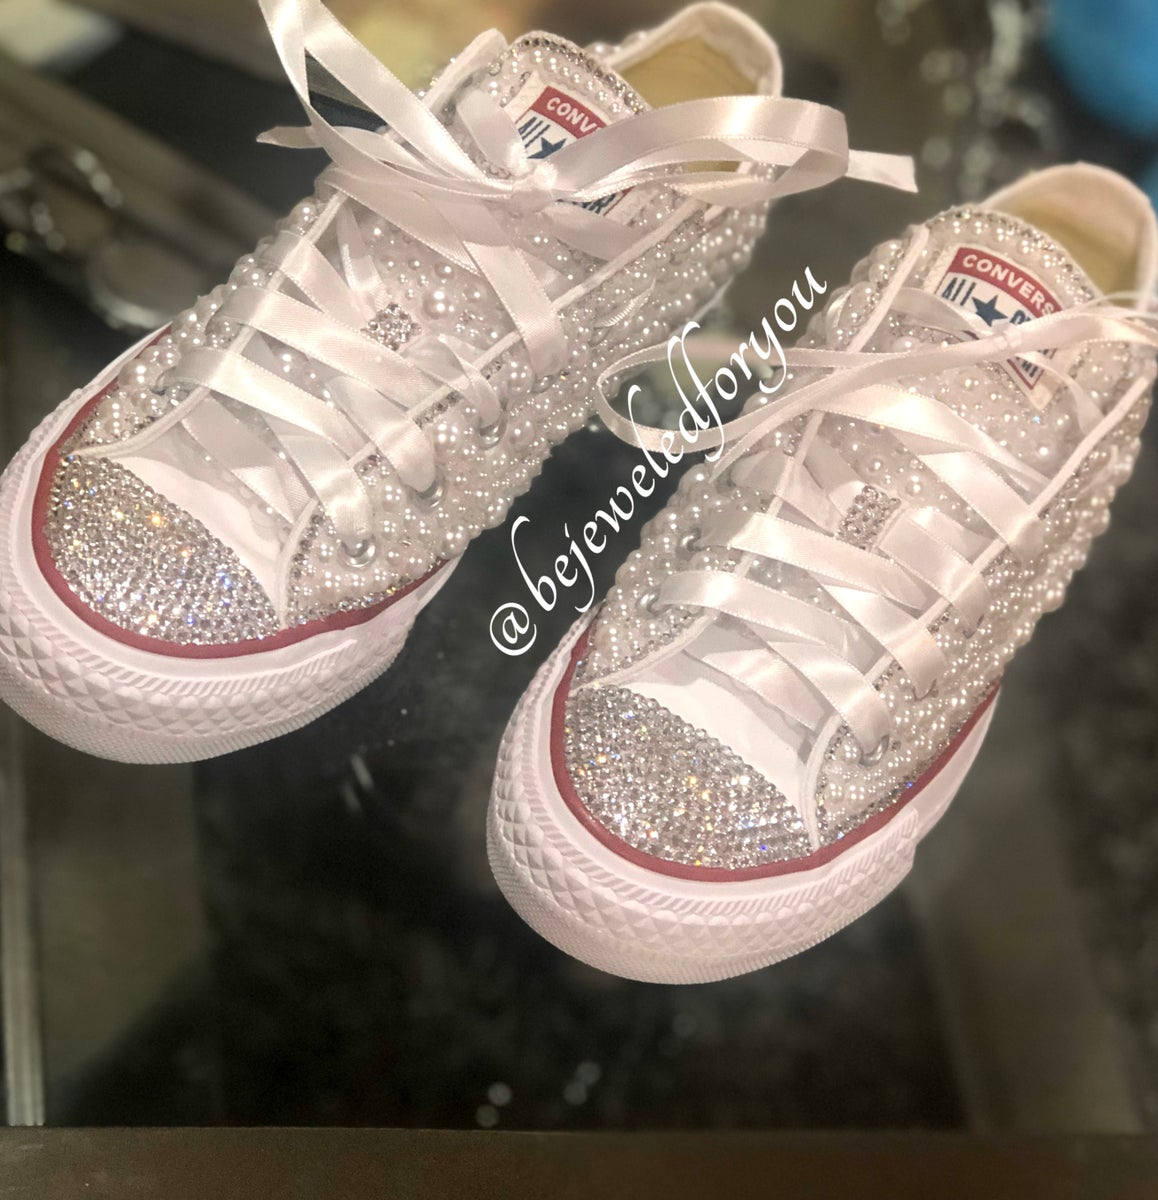 Sfavorevole Correre Eloquente  New Wedding All White Low Top Converse with Clear Swarovski Crystals and  White Pearls | Creationsbytm